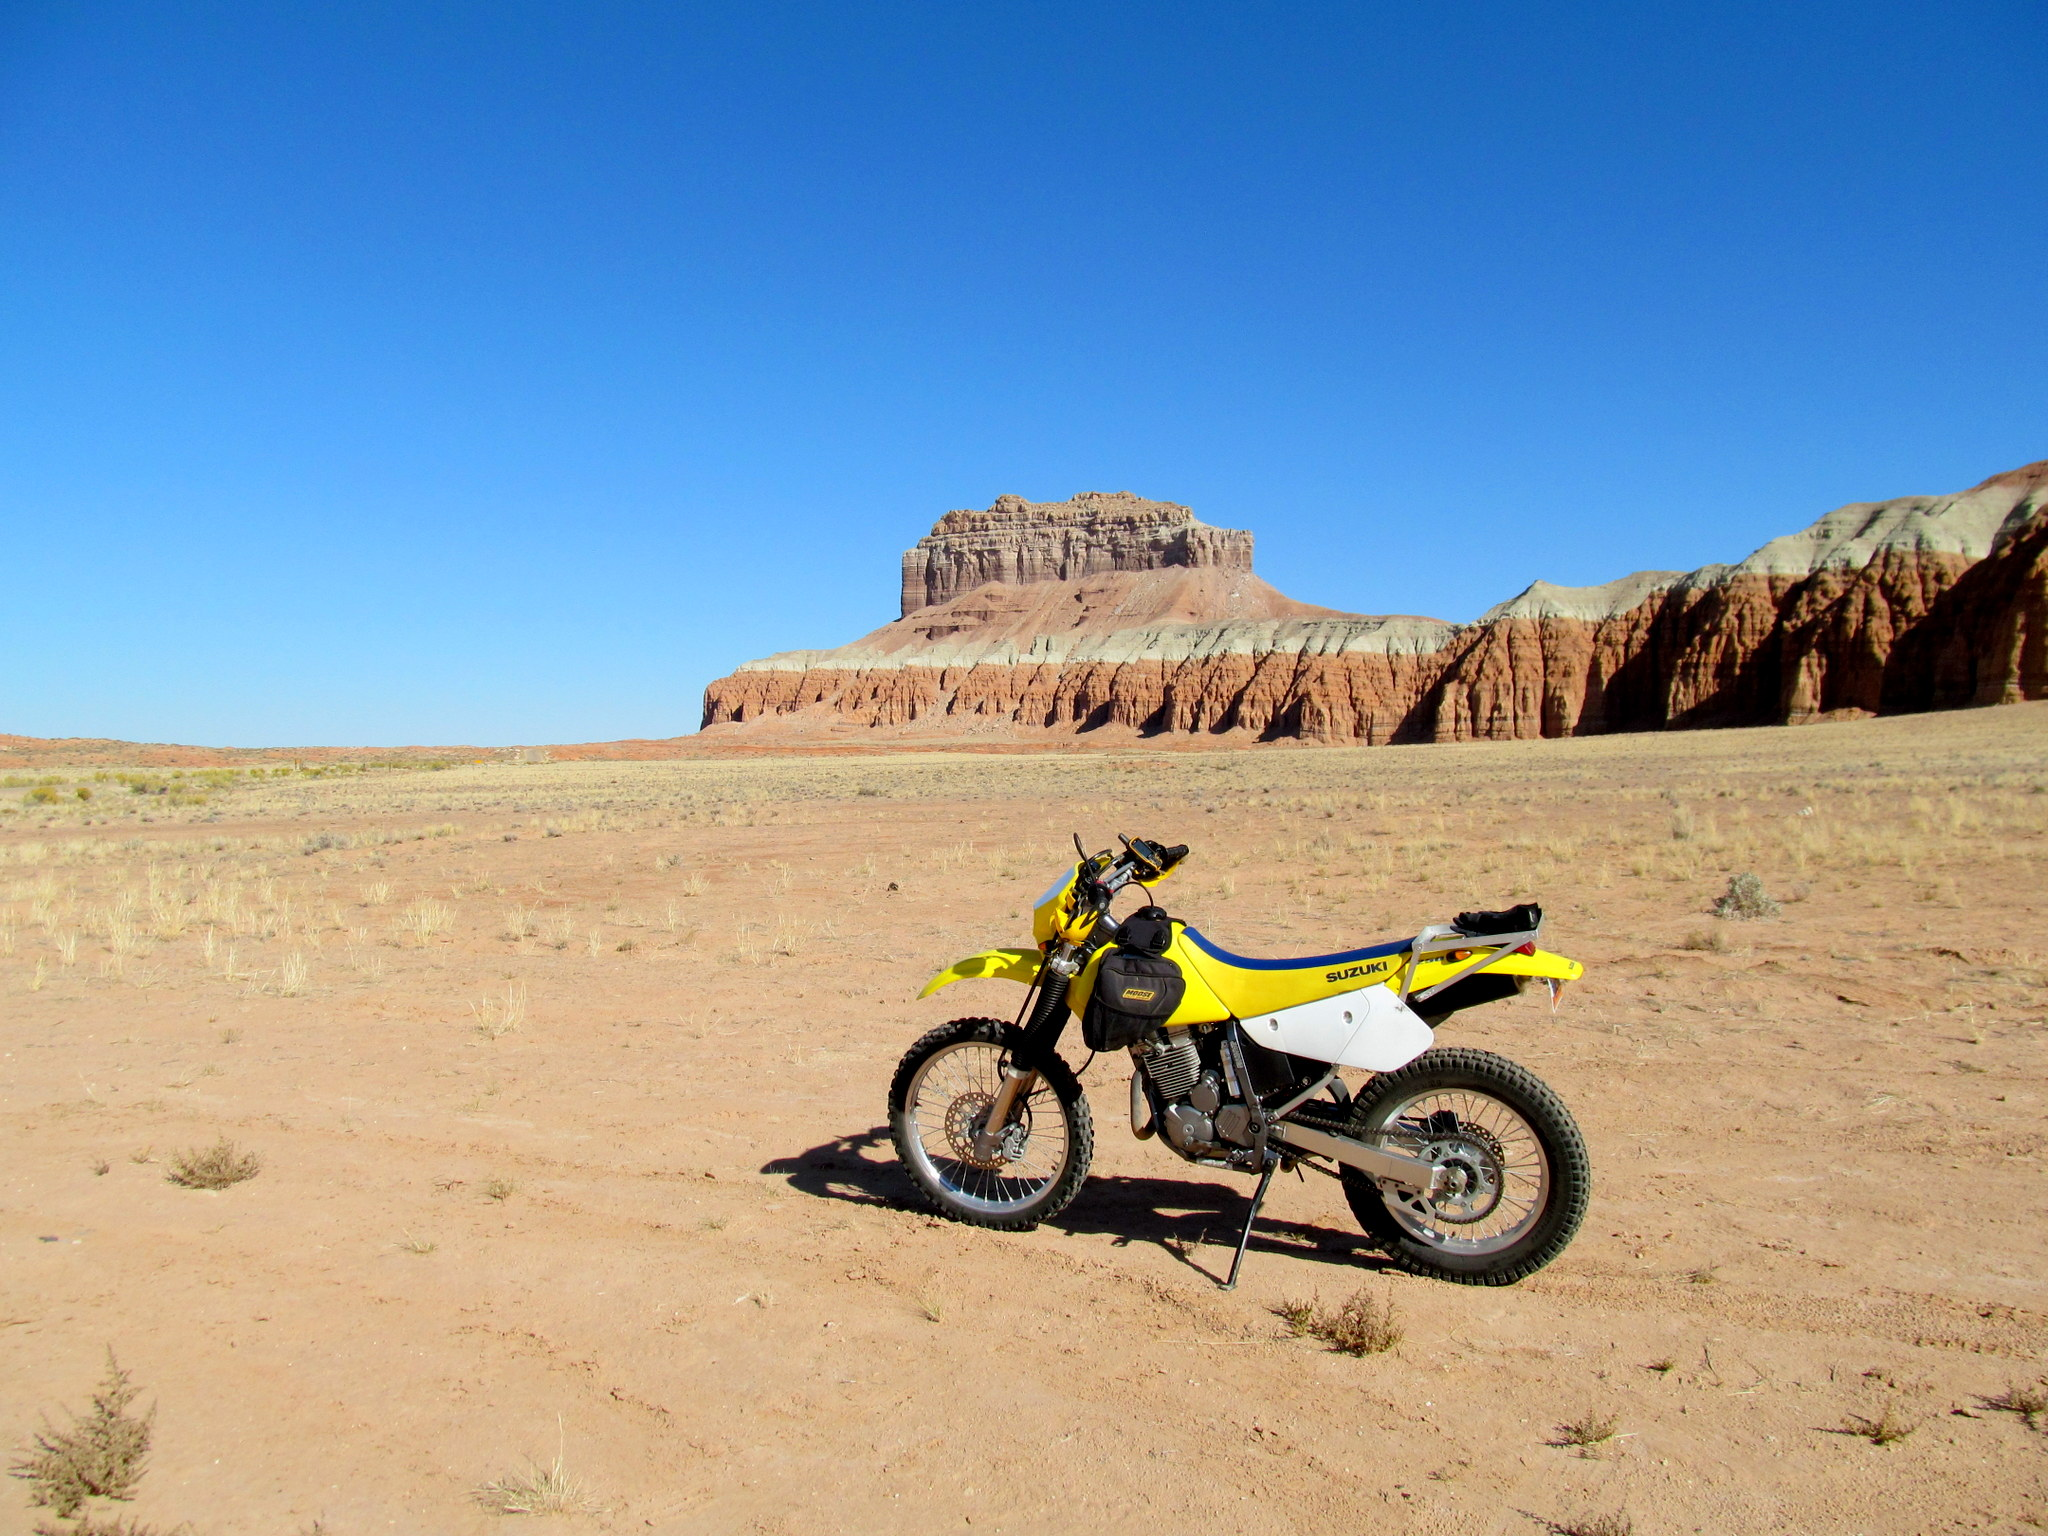 Photo: The DRZ near Wild Horse Butte